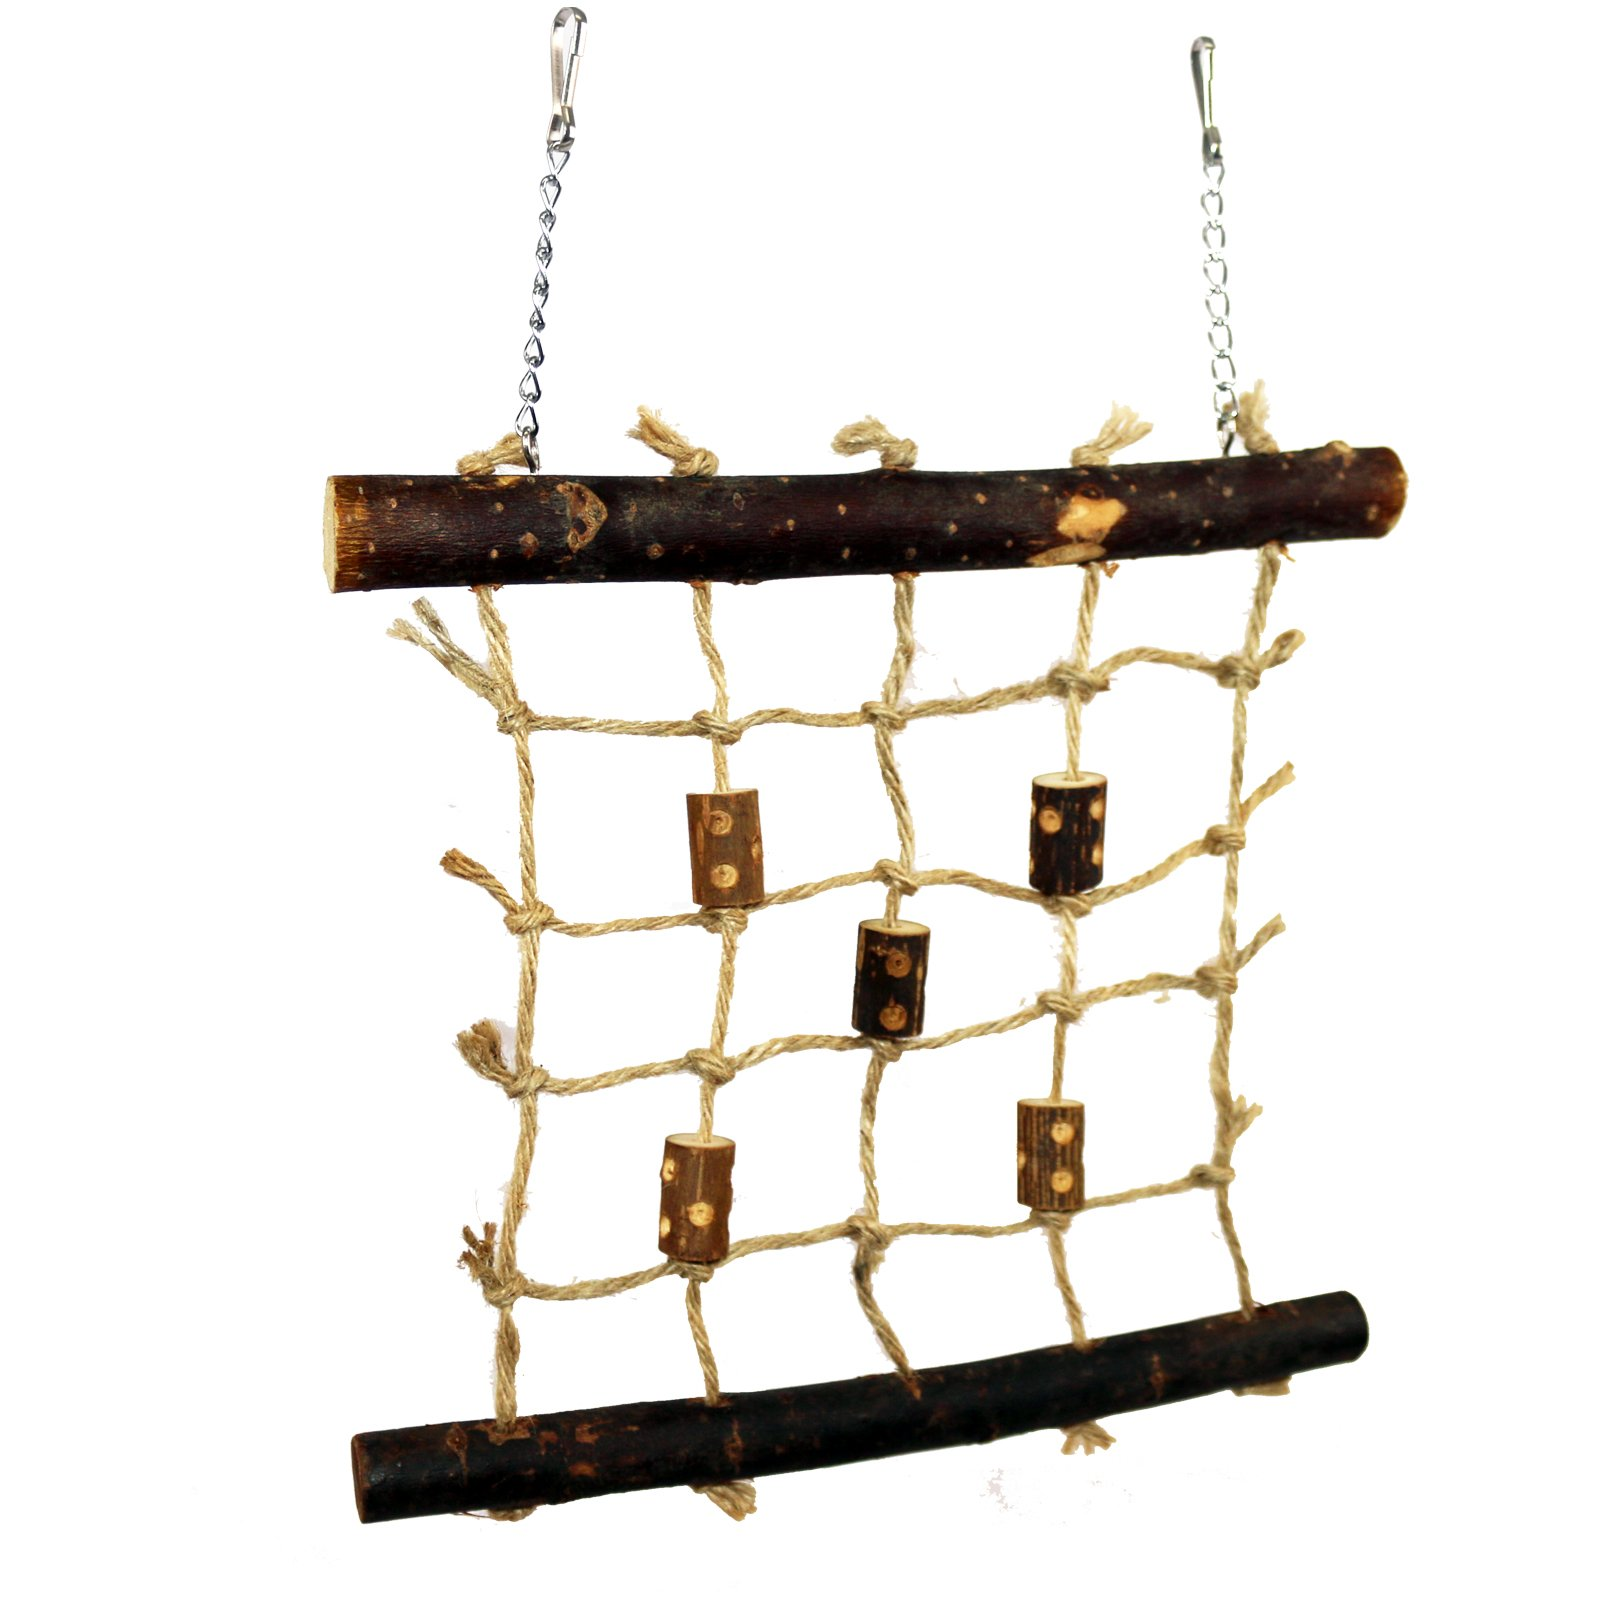 Pet Ting Natural Living Rope Climbing Wall 27 x 24cm - Bird Toy Wall Wooden - Finch Canary Budgie Etc